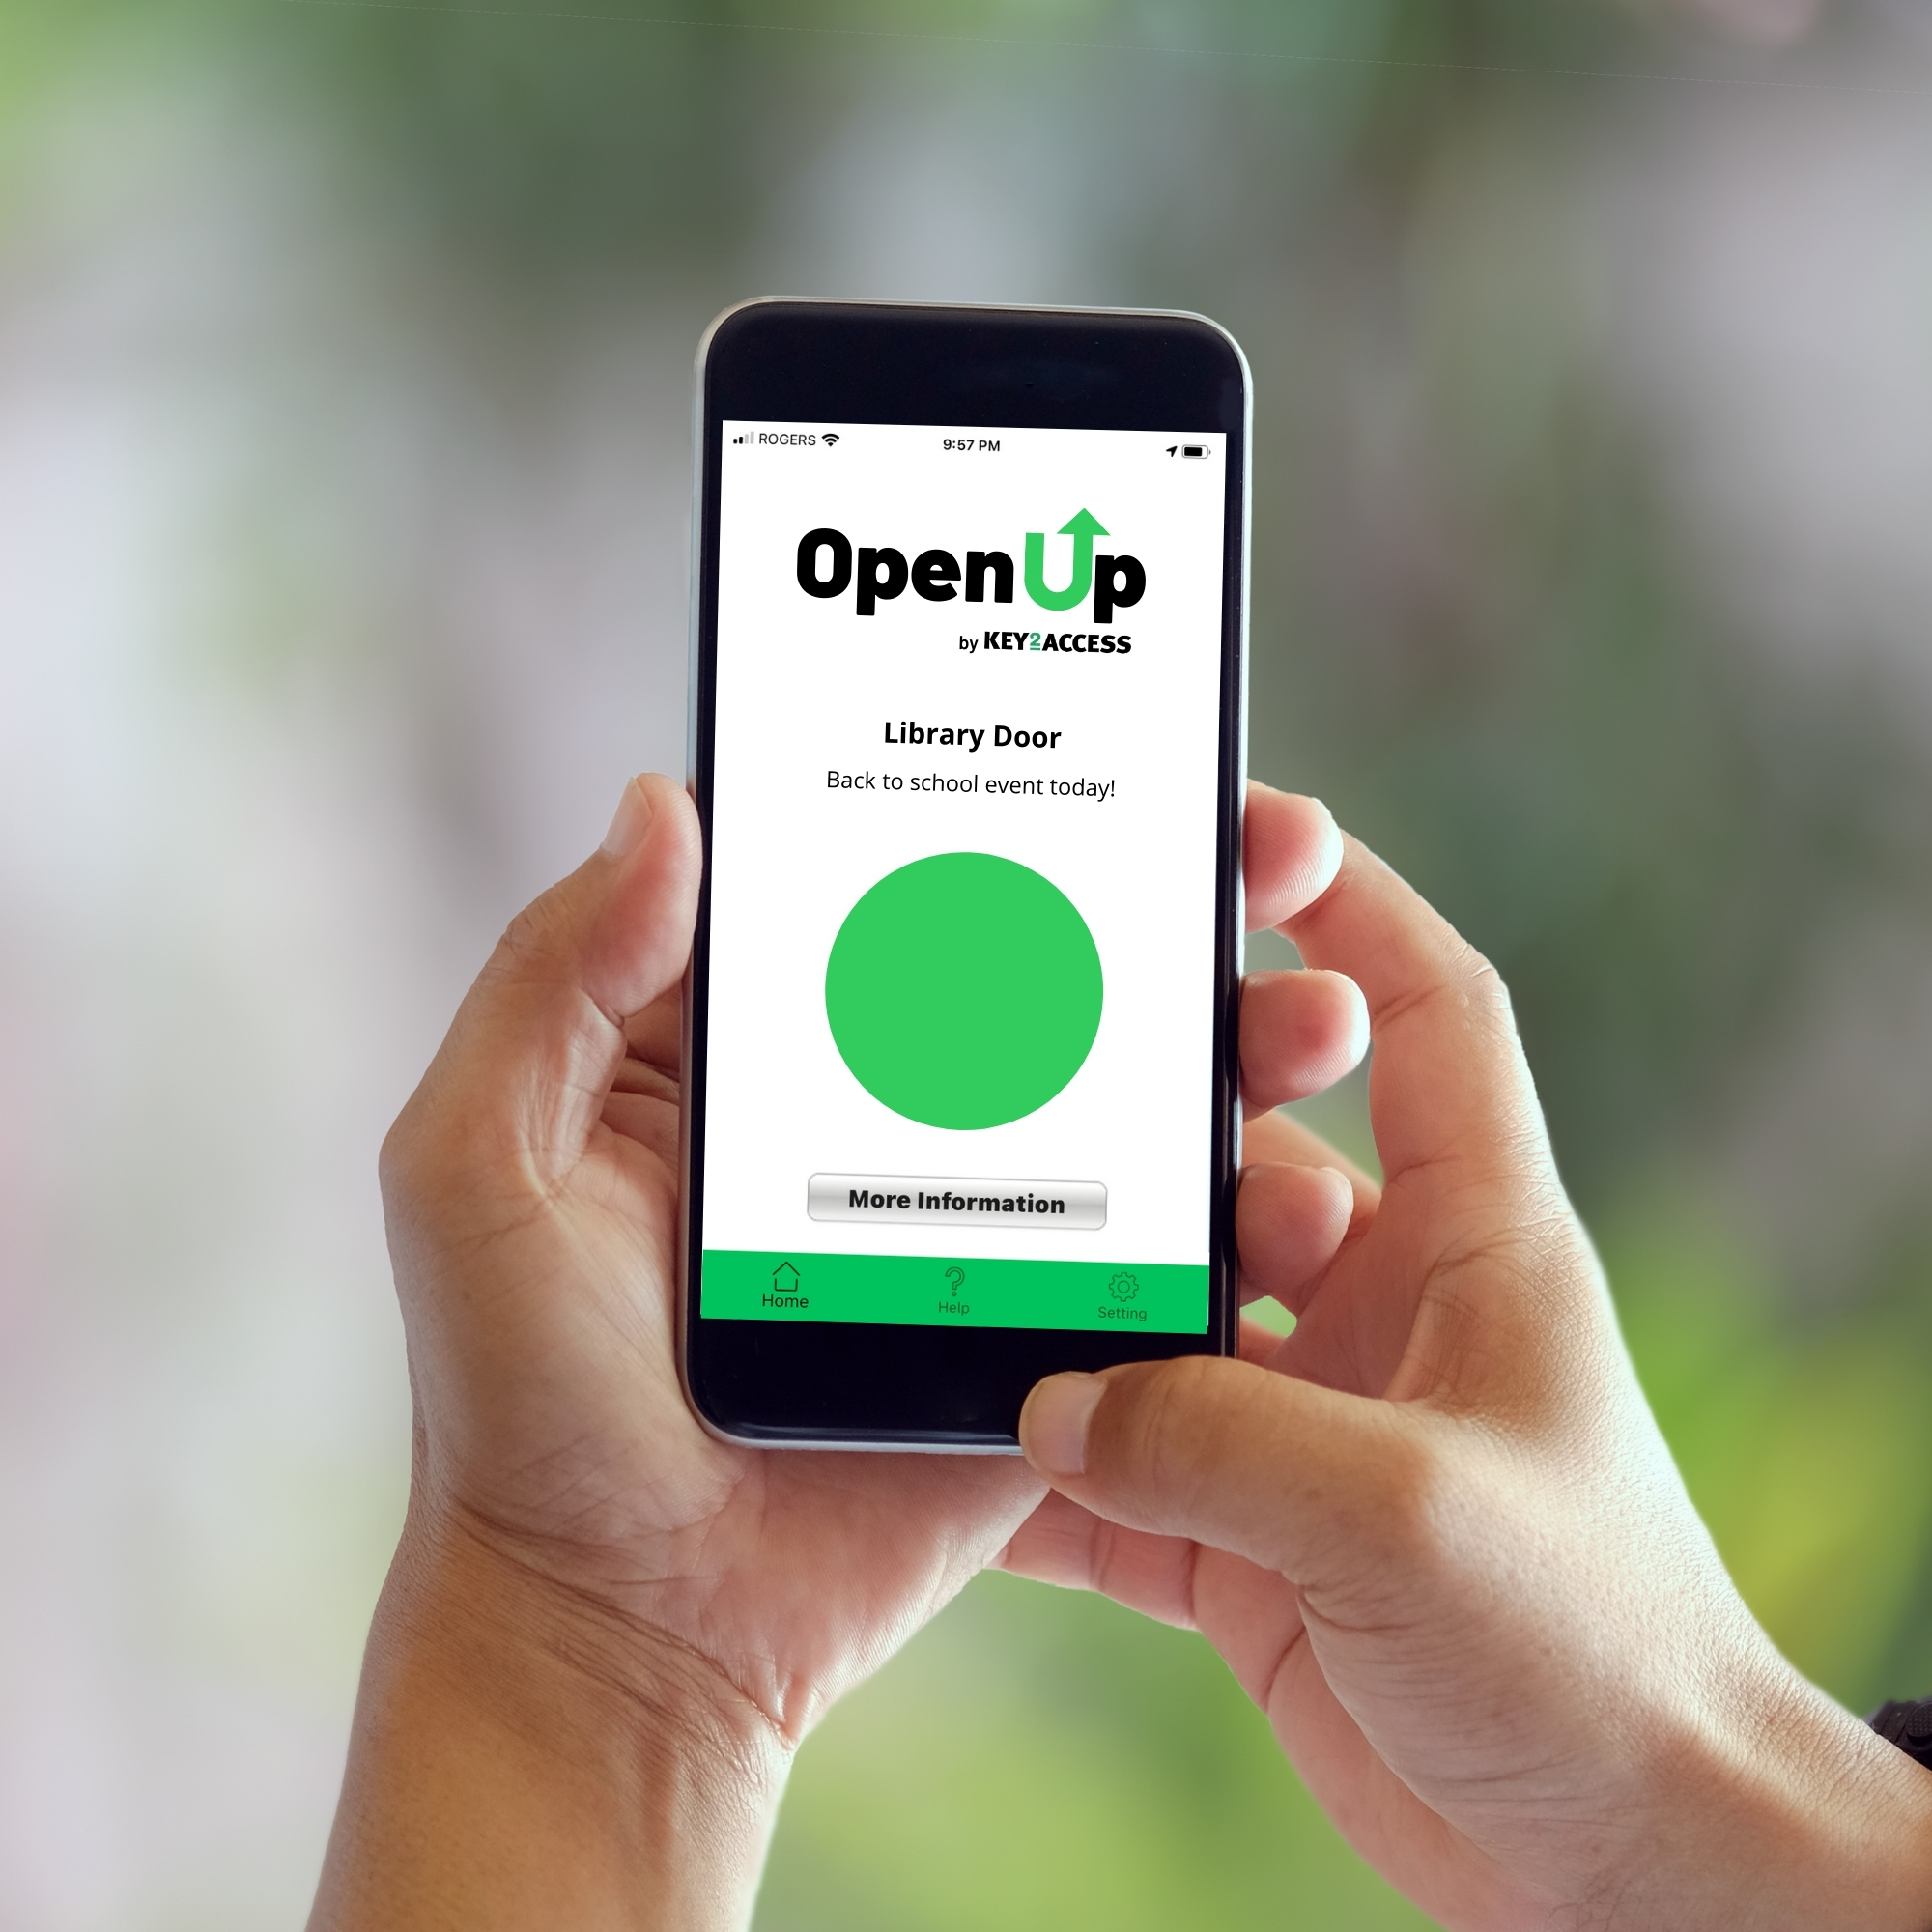 Hands holding smart phone with OpenUp app on the screen